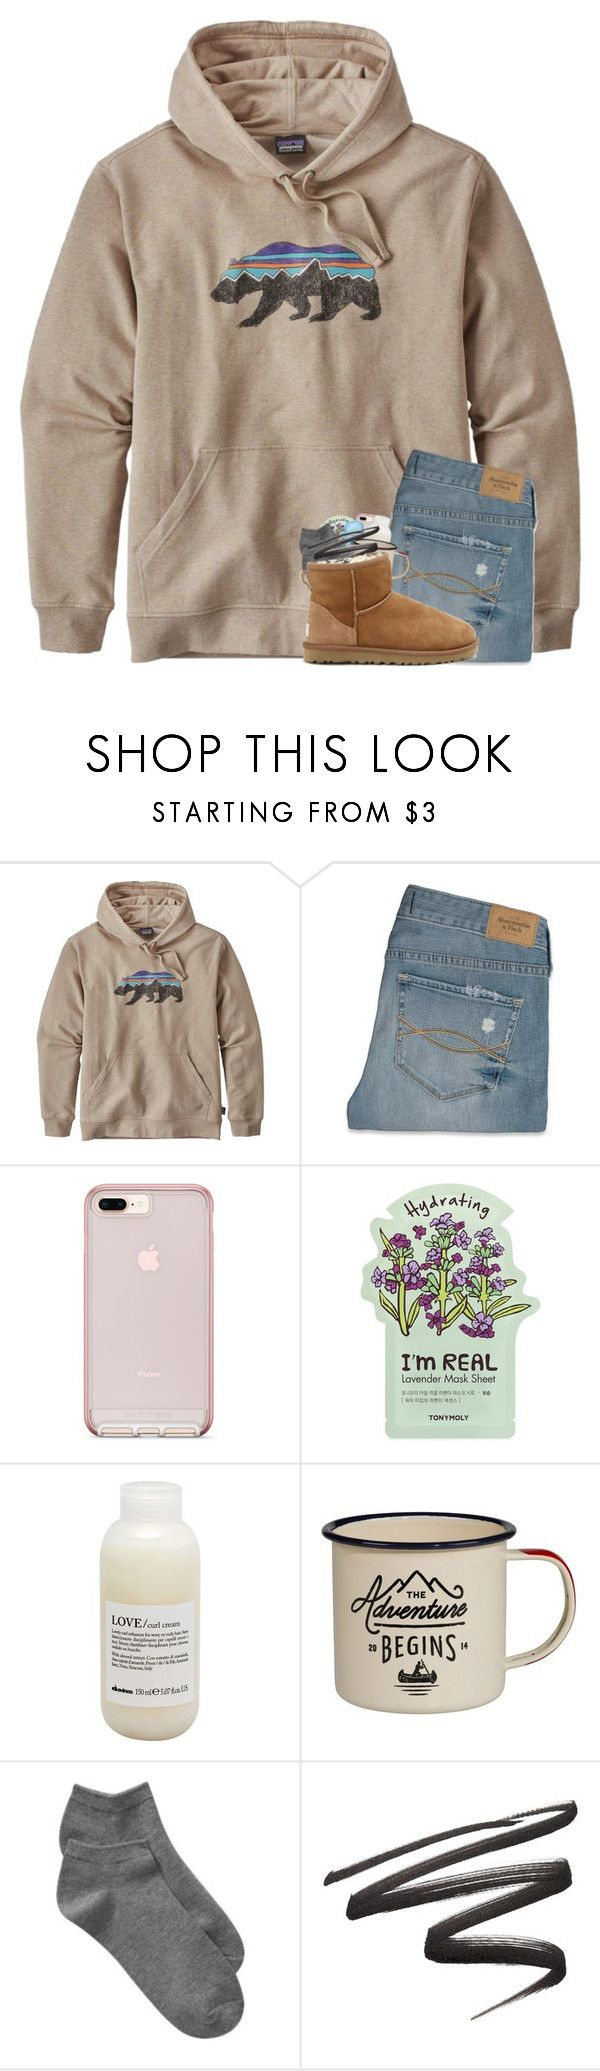 """yayyyy to frand!! she made it to 1kkkk"" by katie-1111 ❤ liked on Polyvore featuring Patagonia, Abercrombie & Fitch, TONYMOLY, Davines, Gap and UGG Australia"